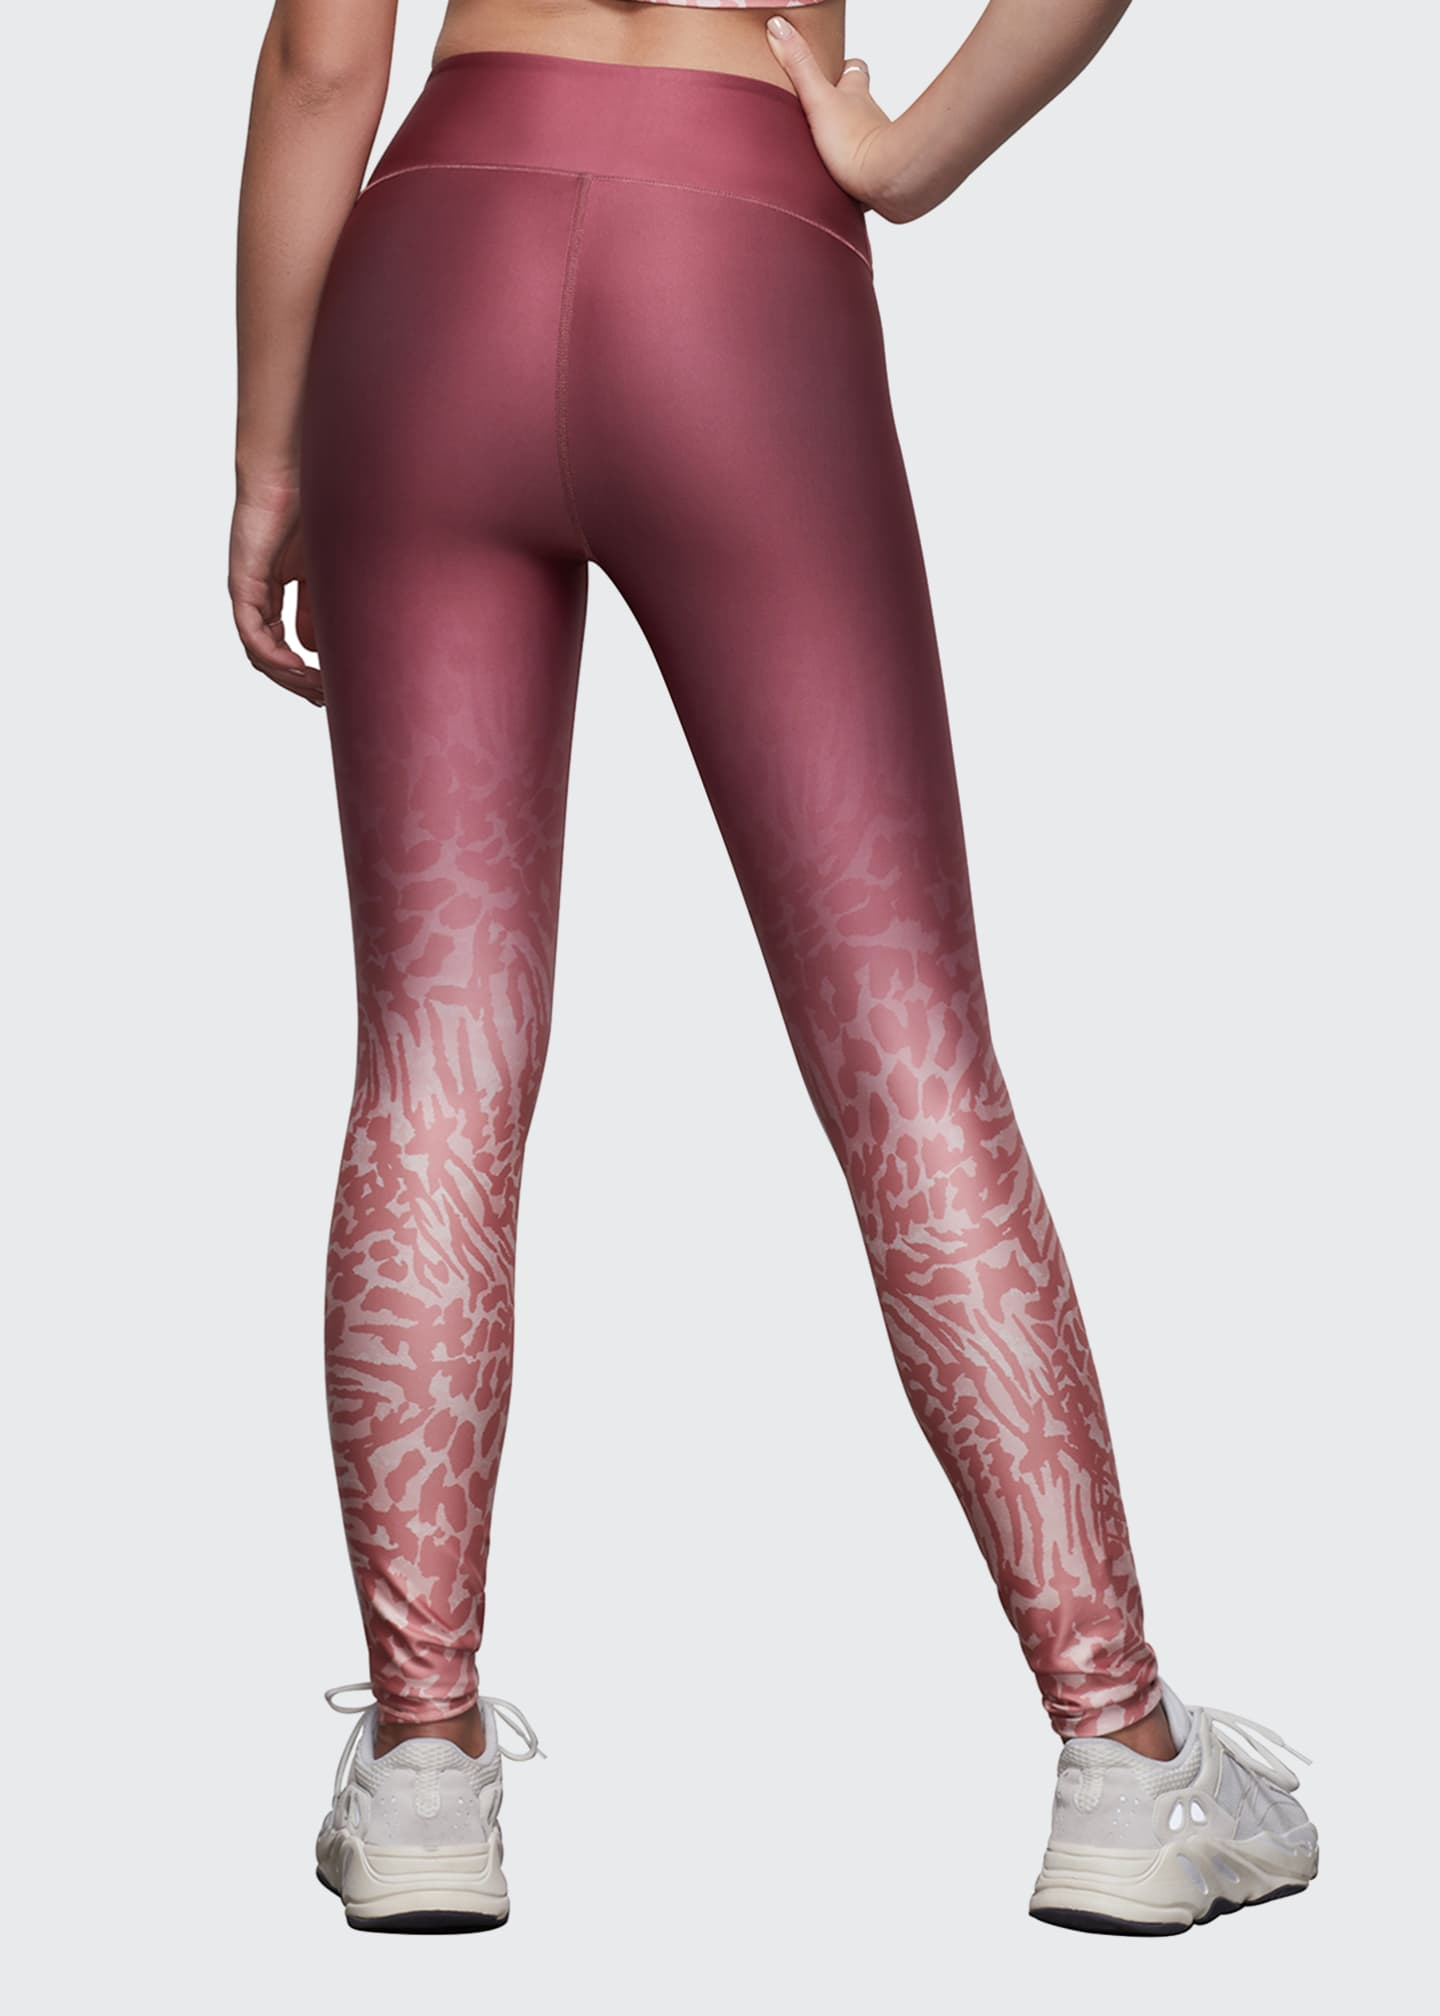 Image 3 of 3: Ombre Printed Leggings - Inclusive Sizing